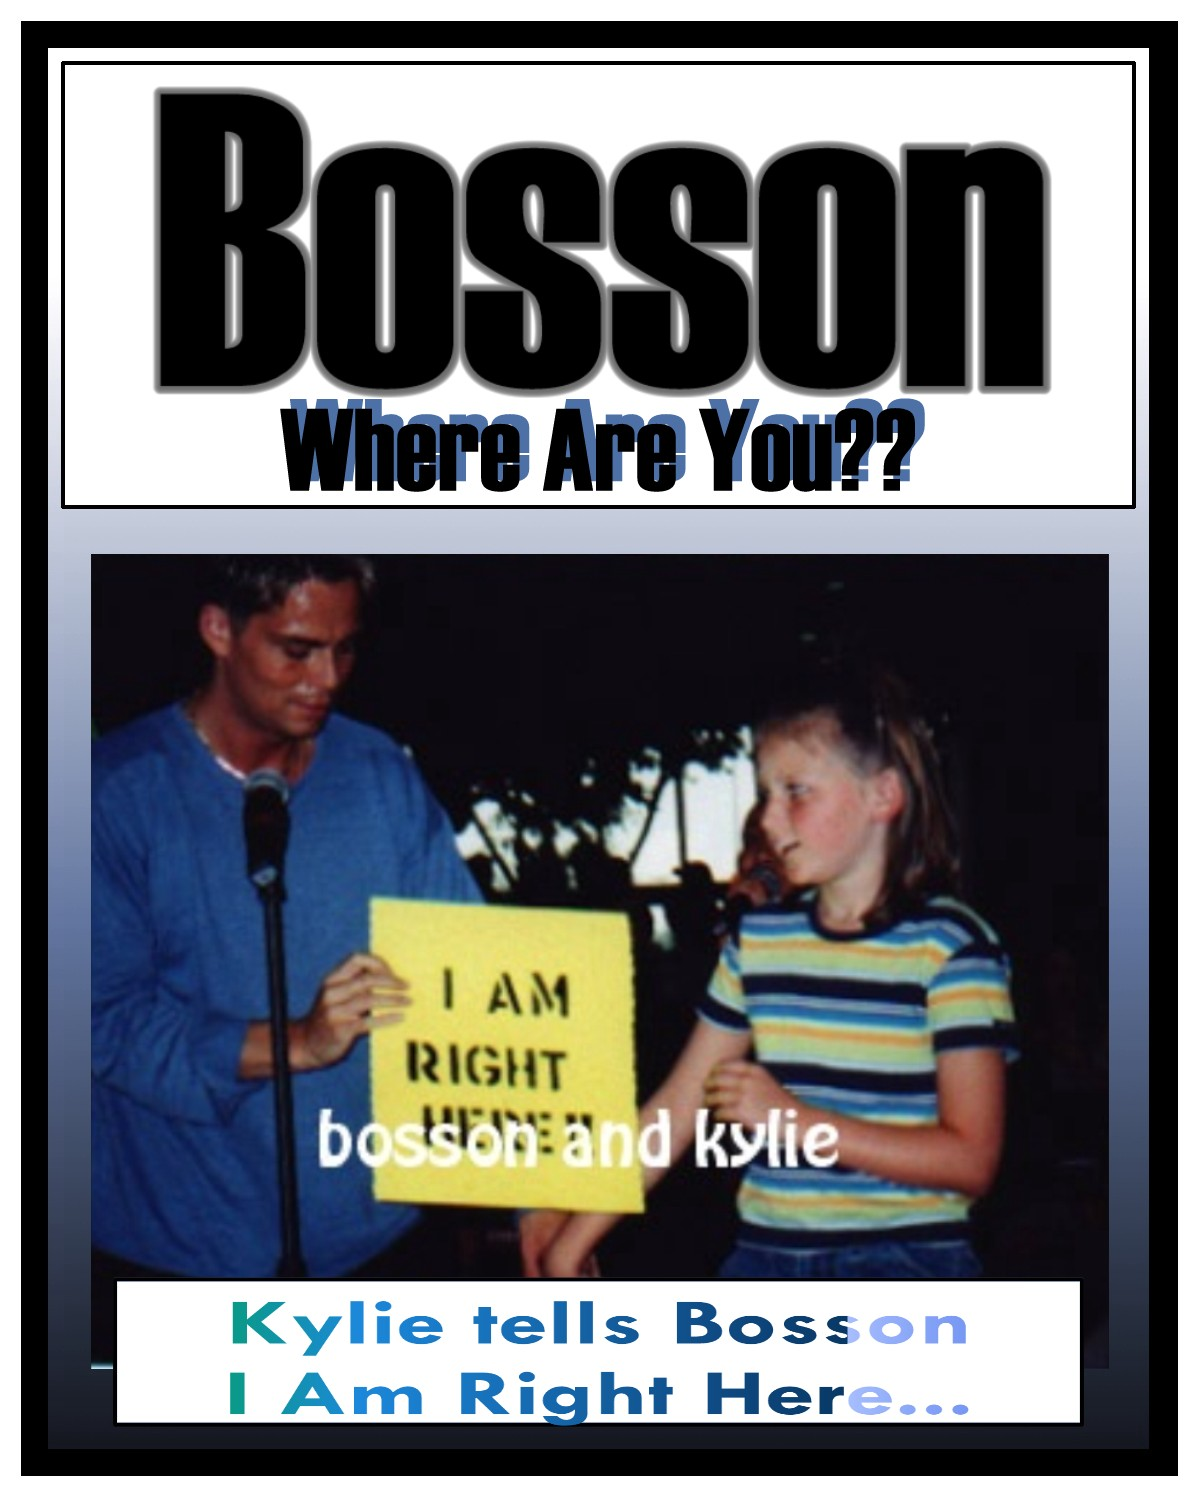 Ky lets Bosson know, she's right here...=)